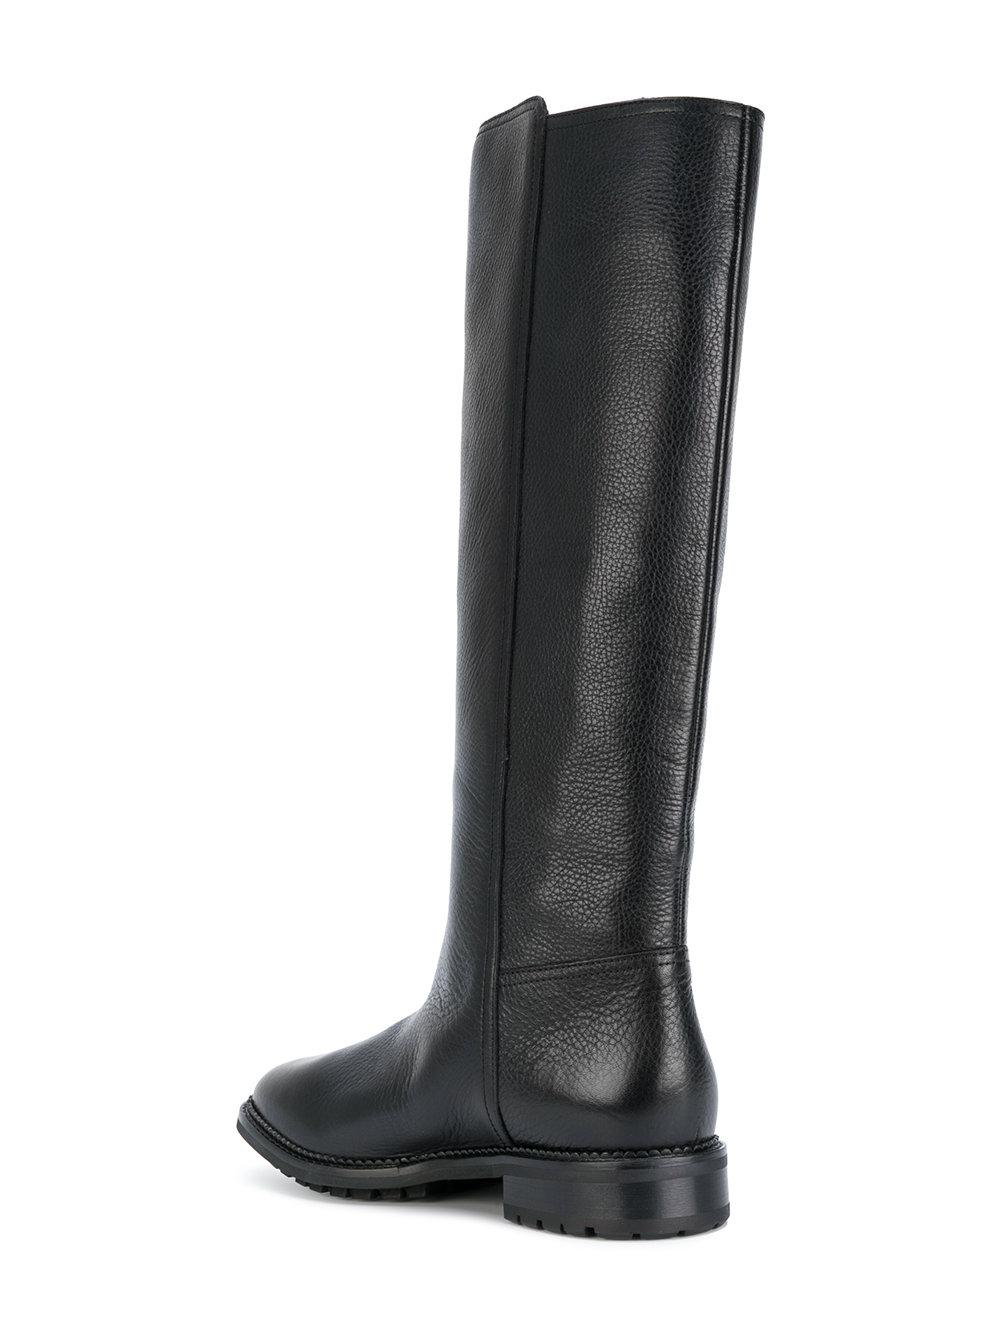 L'Autre Chose Leather Tall Flat Boots in Black